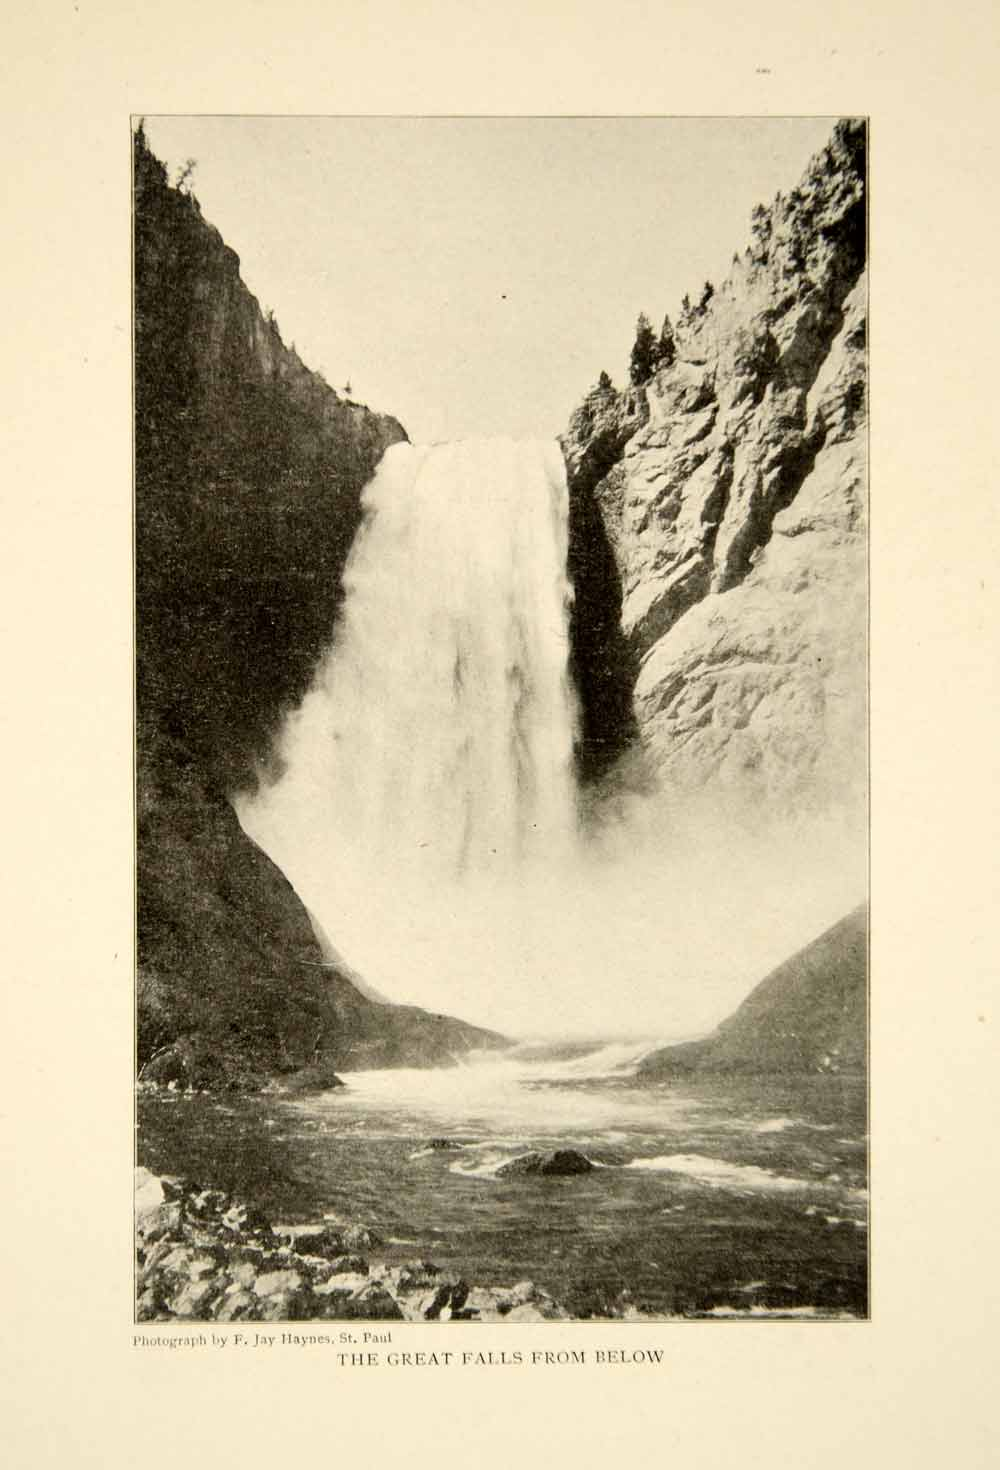 1903 Print Yellowstone National Park Waterfall Landscape Historical Image XGFD2